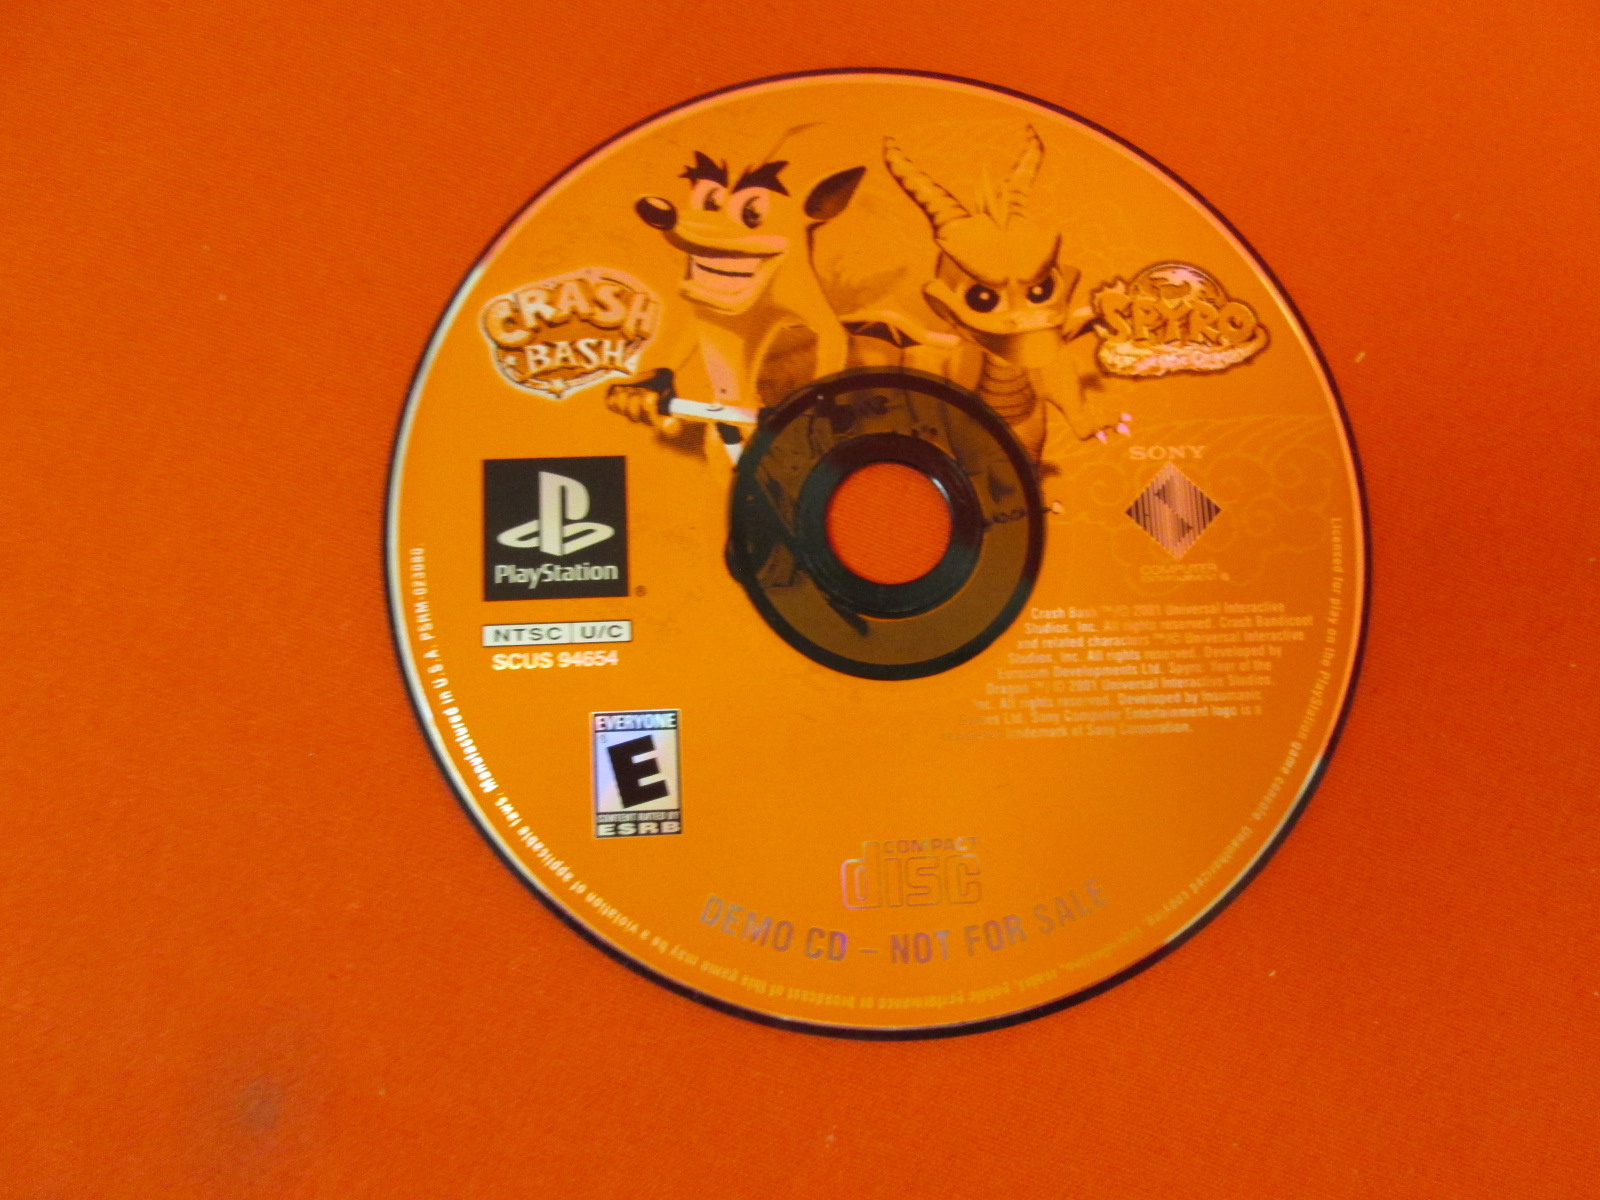 Demo CD Crash Bash And Spyro Year Of The Dragon For PlayStation 1